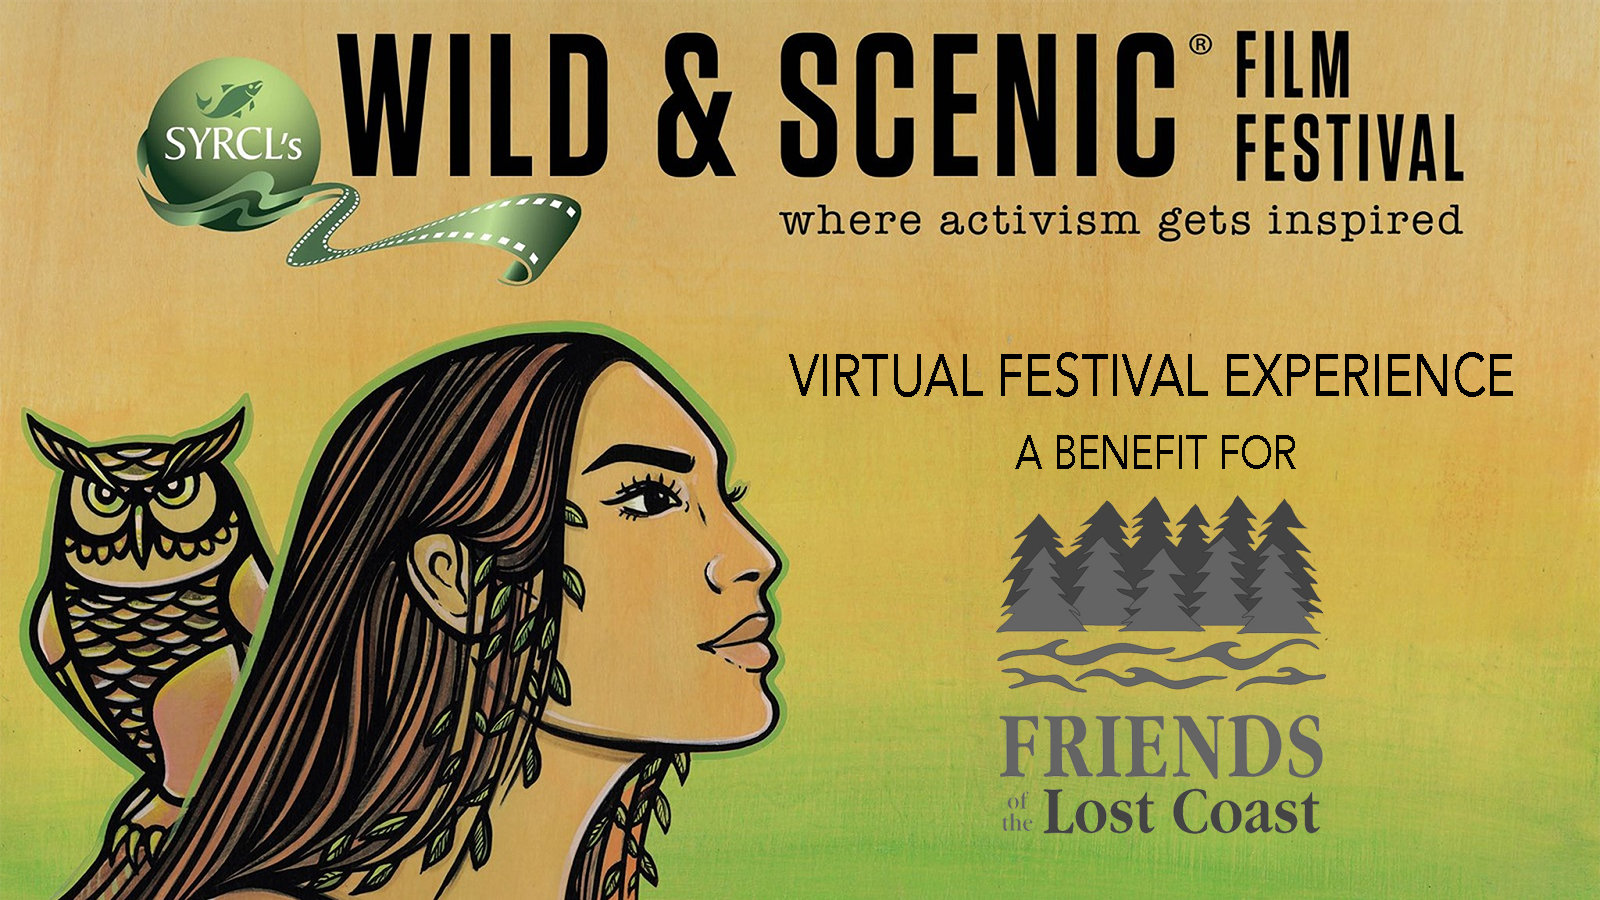 Friends of the Lost Coast Presents SYRCL's Wild & Scenic Film Festival On Tour